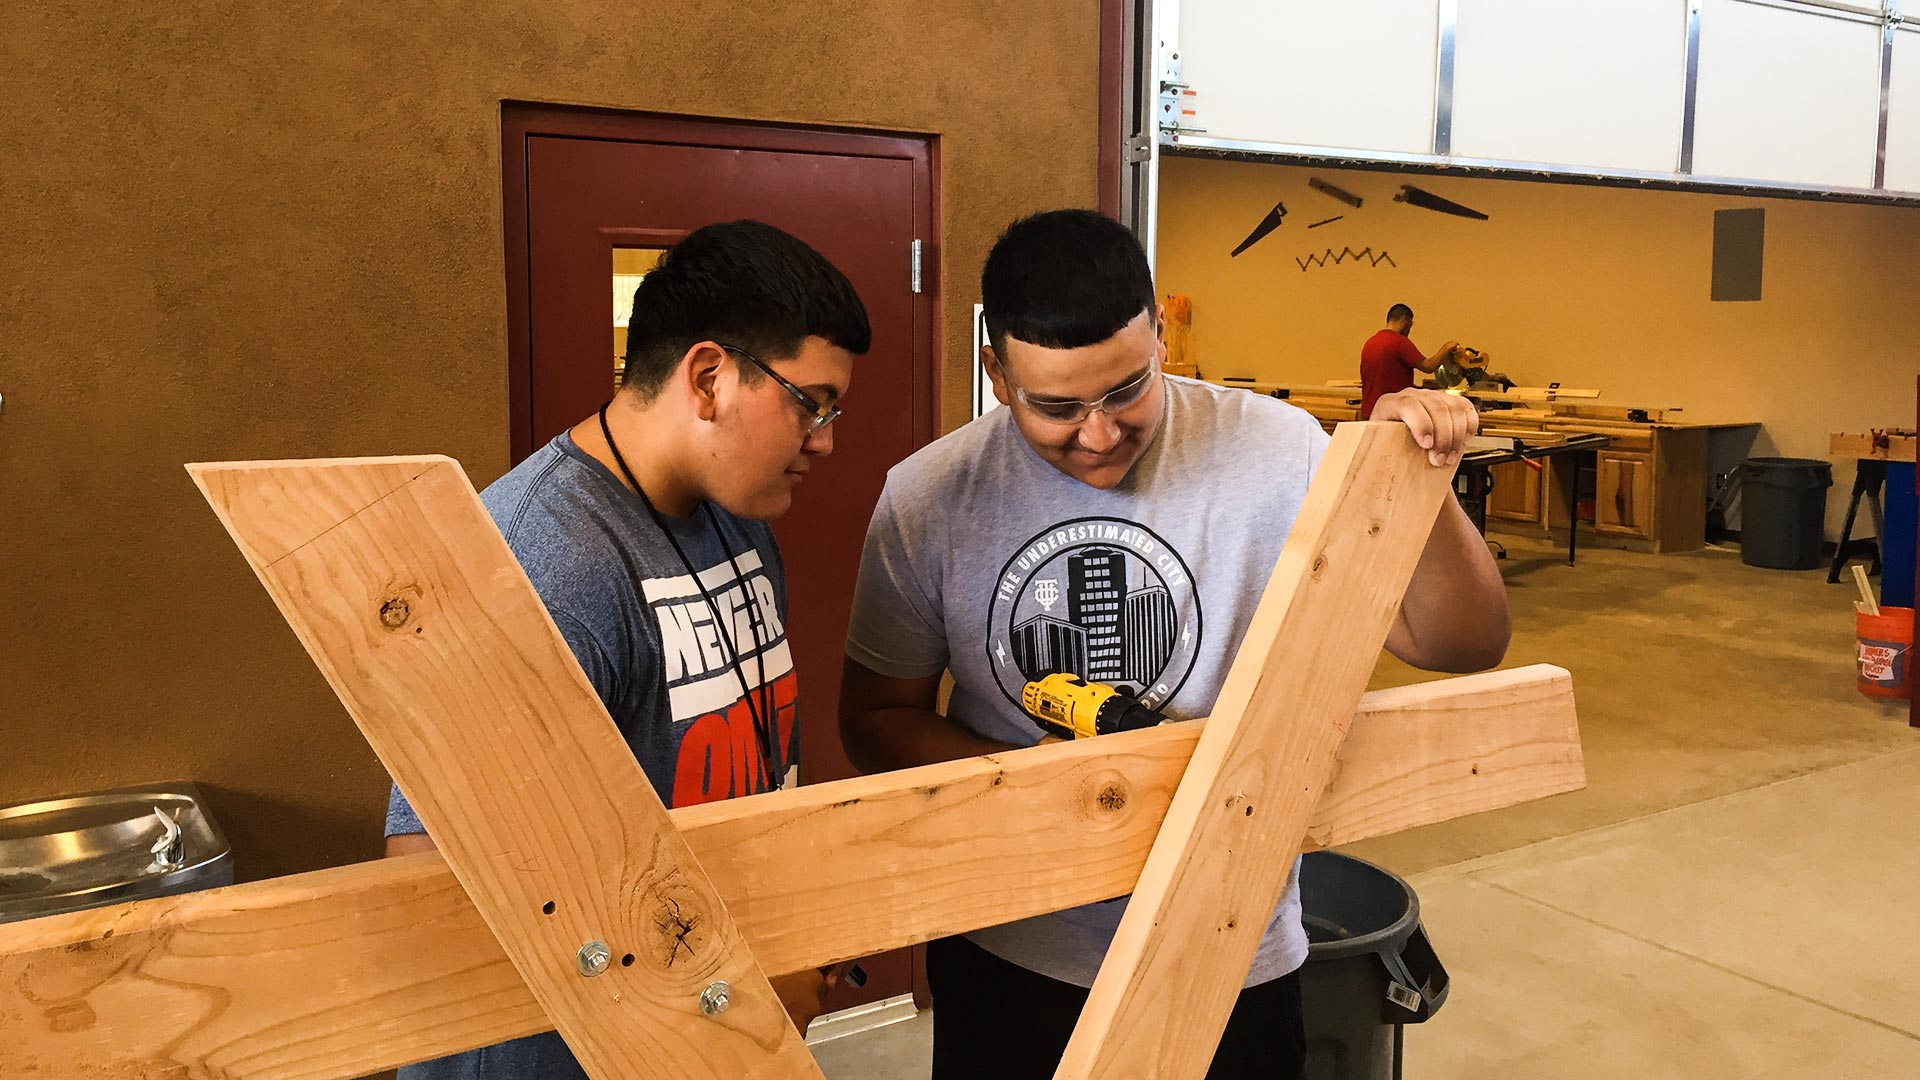 Students in Jim Luckow's class at Pima JTED Star Campus learn skills to be carpenters, masons, plumber and electricians.